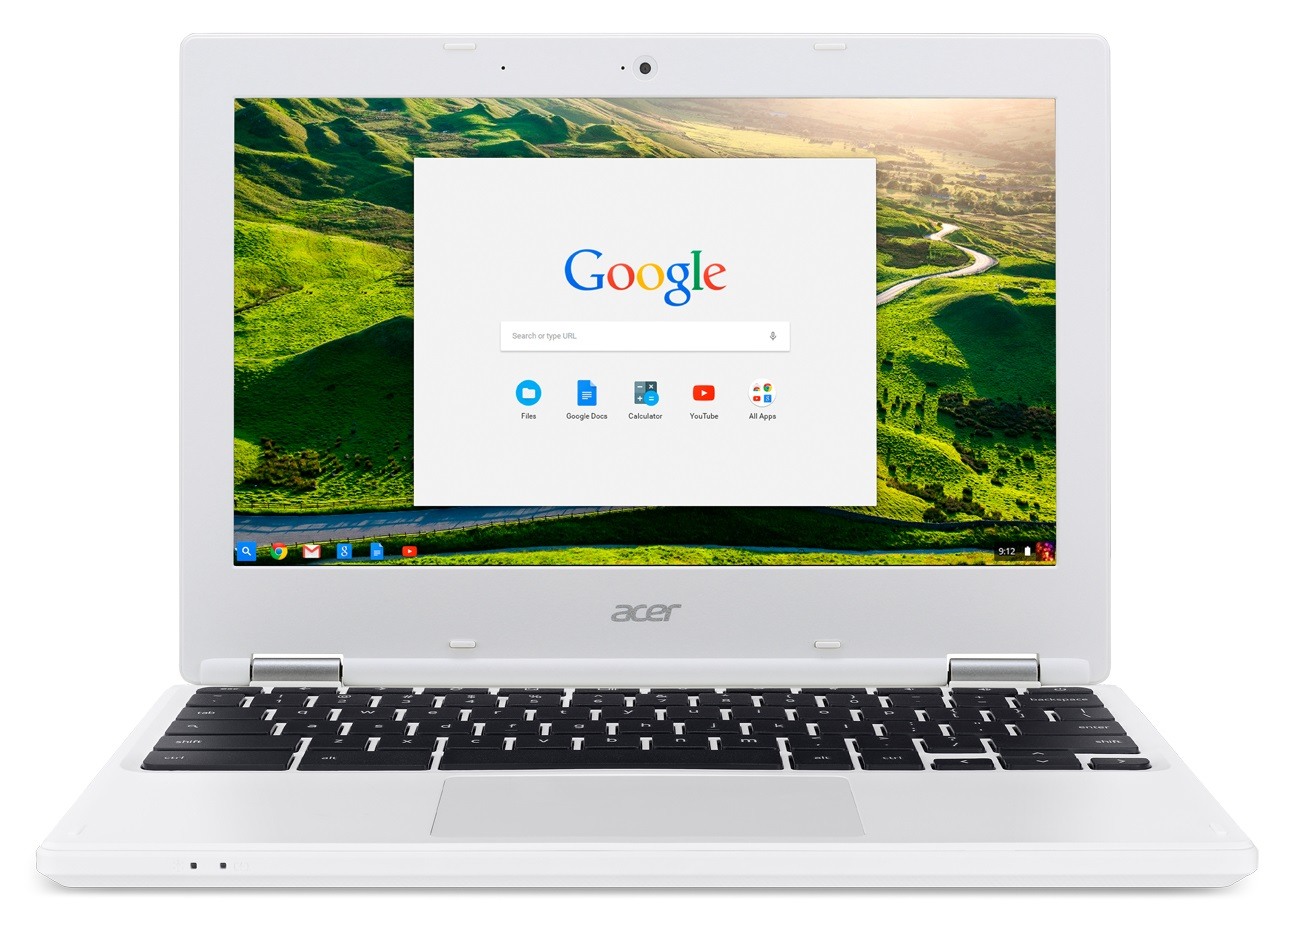 "Acer Chromebook 11 (CB3-131-C4SZ) Celeron N2840/2GB/eMMC 32GB+N/HD Graphics/11.6"" HD ComfyView LCD/Google Chrome/White"